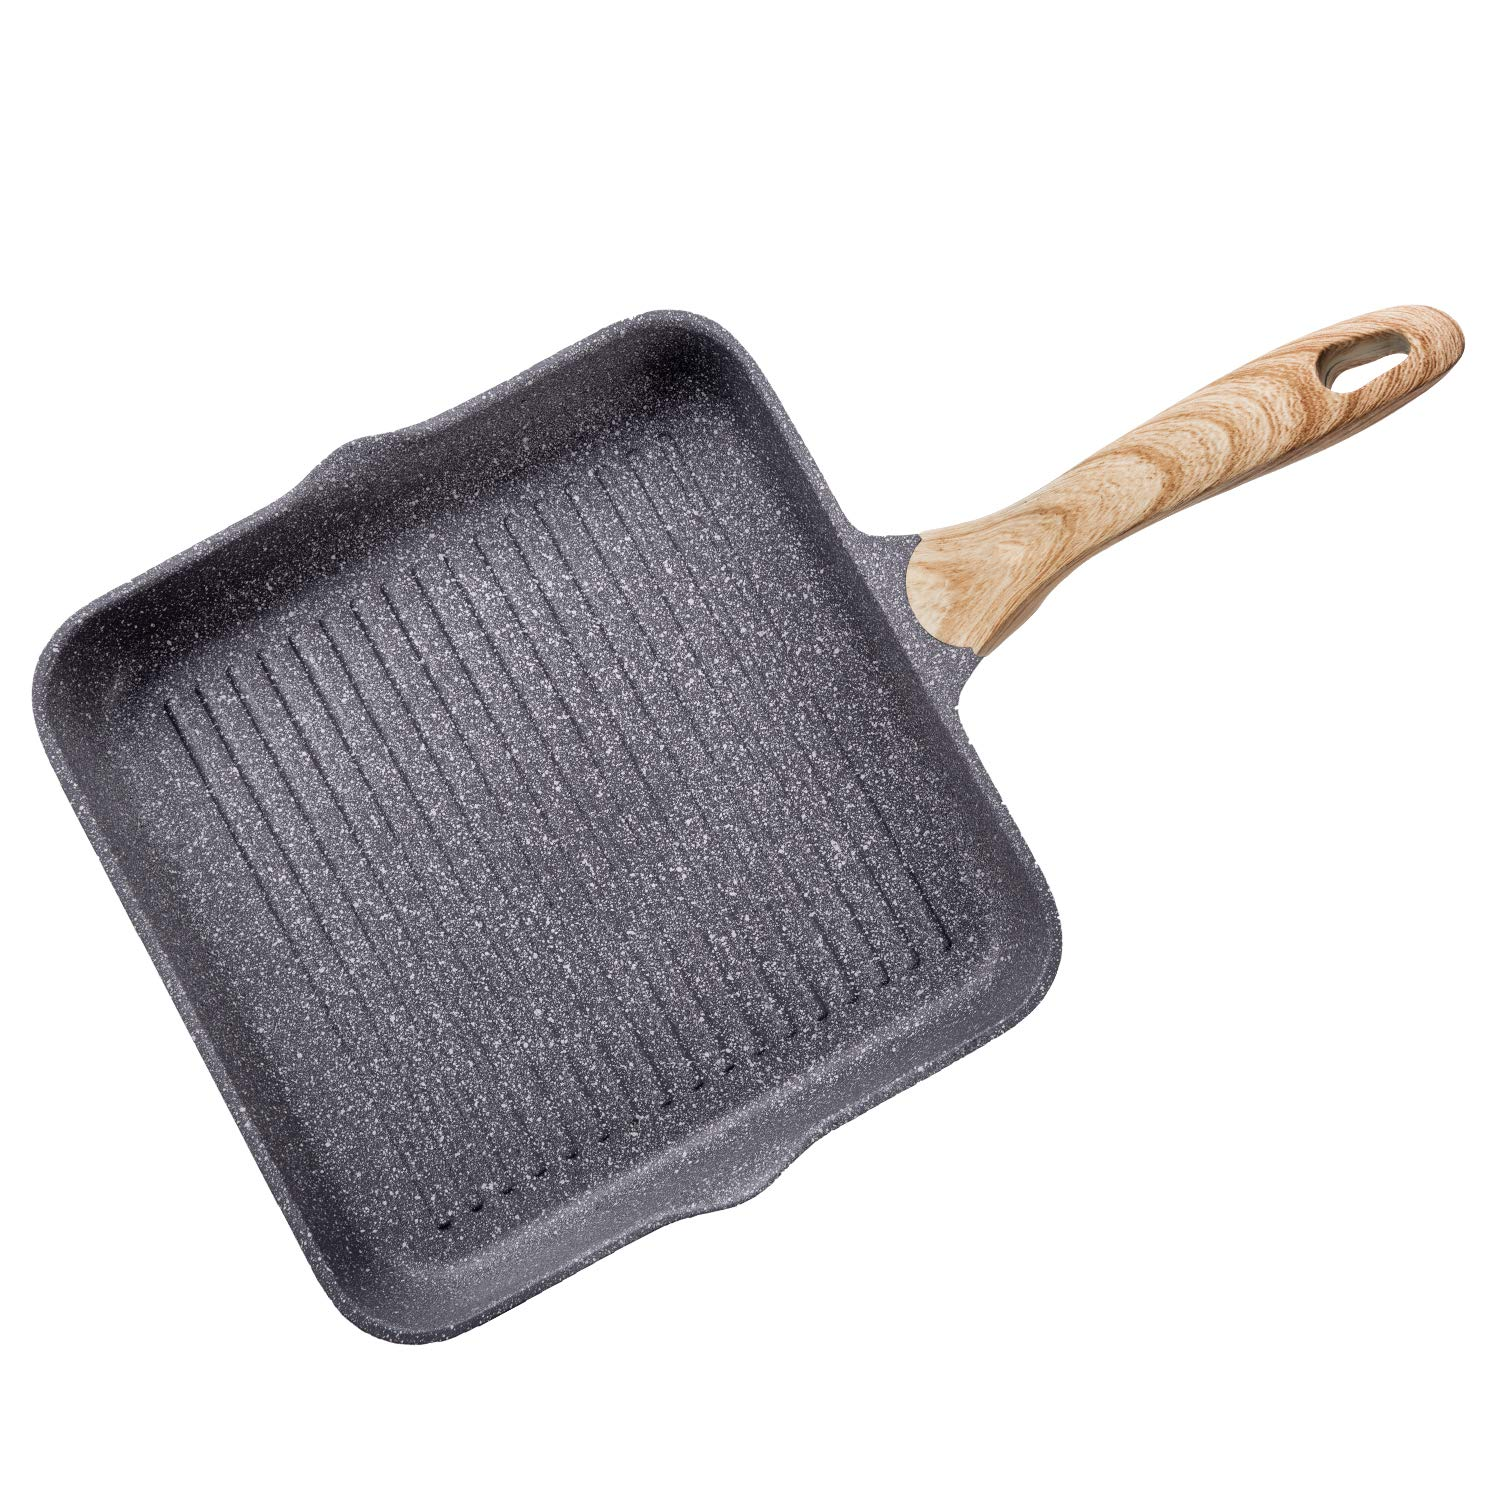 Jeetee 11 Inch Nonstick Oxygen Square Gill Pan with Wooden Handle PFOA Free Griddle Pan Medical Stone Aluminum Frying Pan Beefsteak Suitable For All Stoves